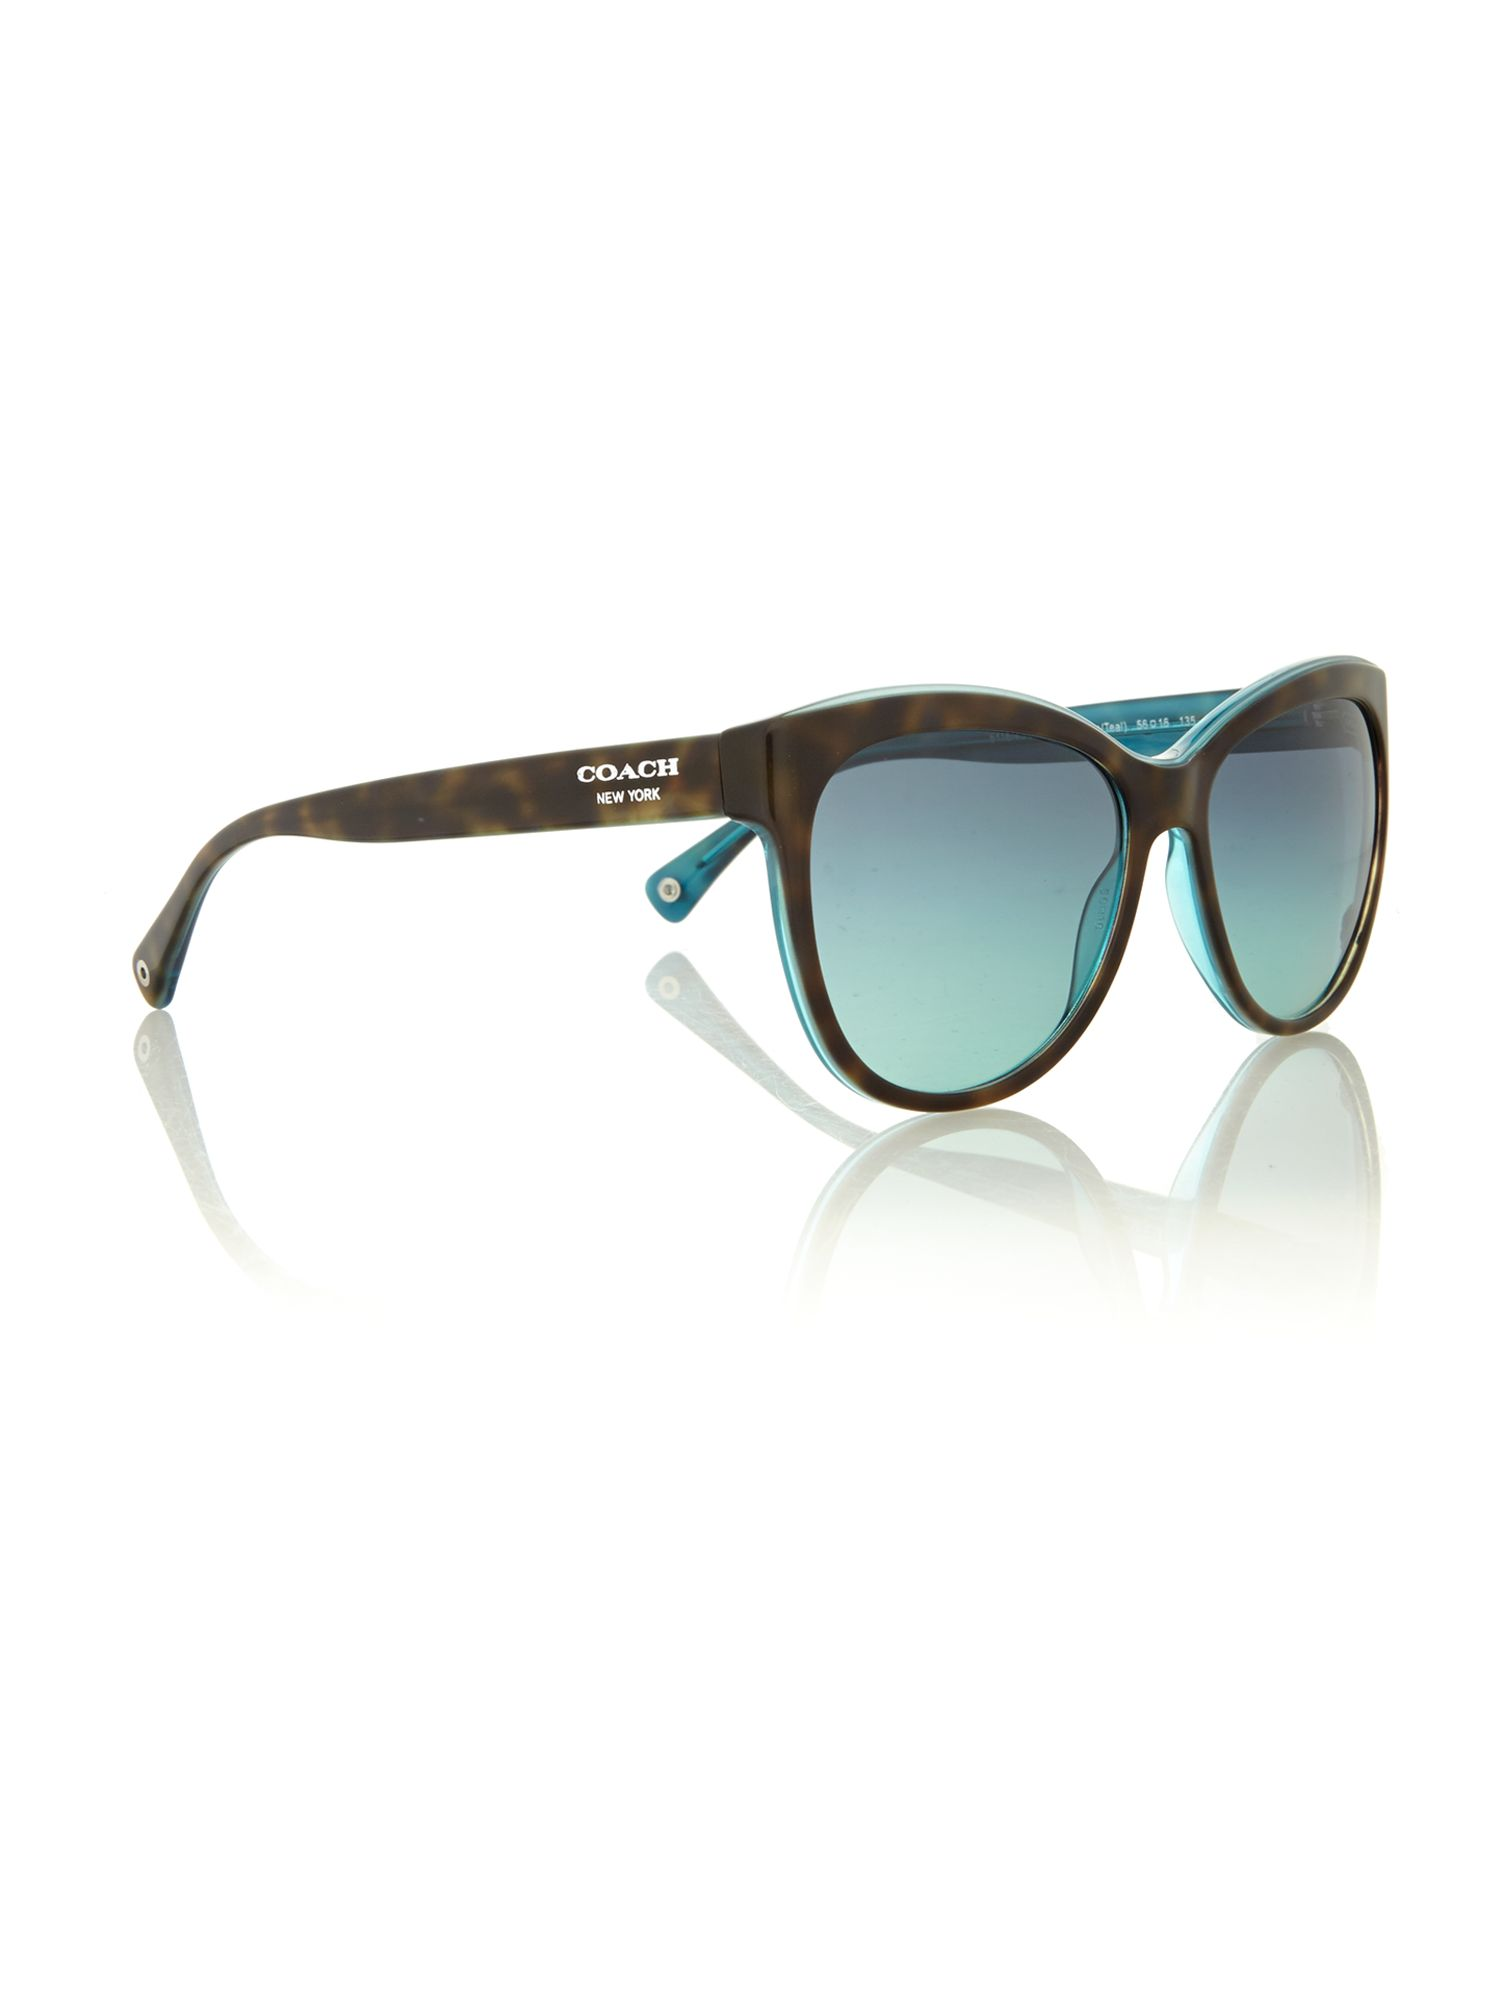 Ladies HC8055 dark tortoise/teal samantha sunglas